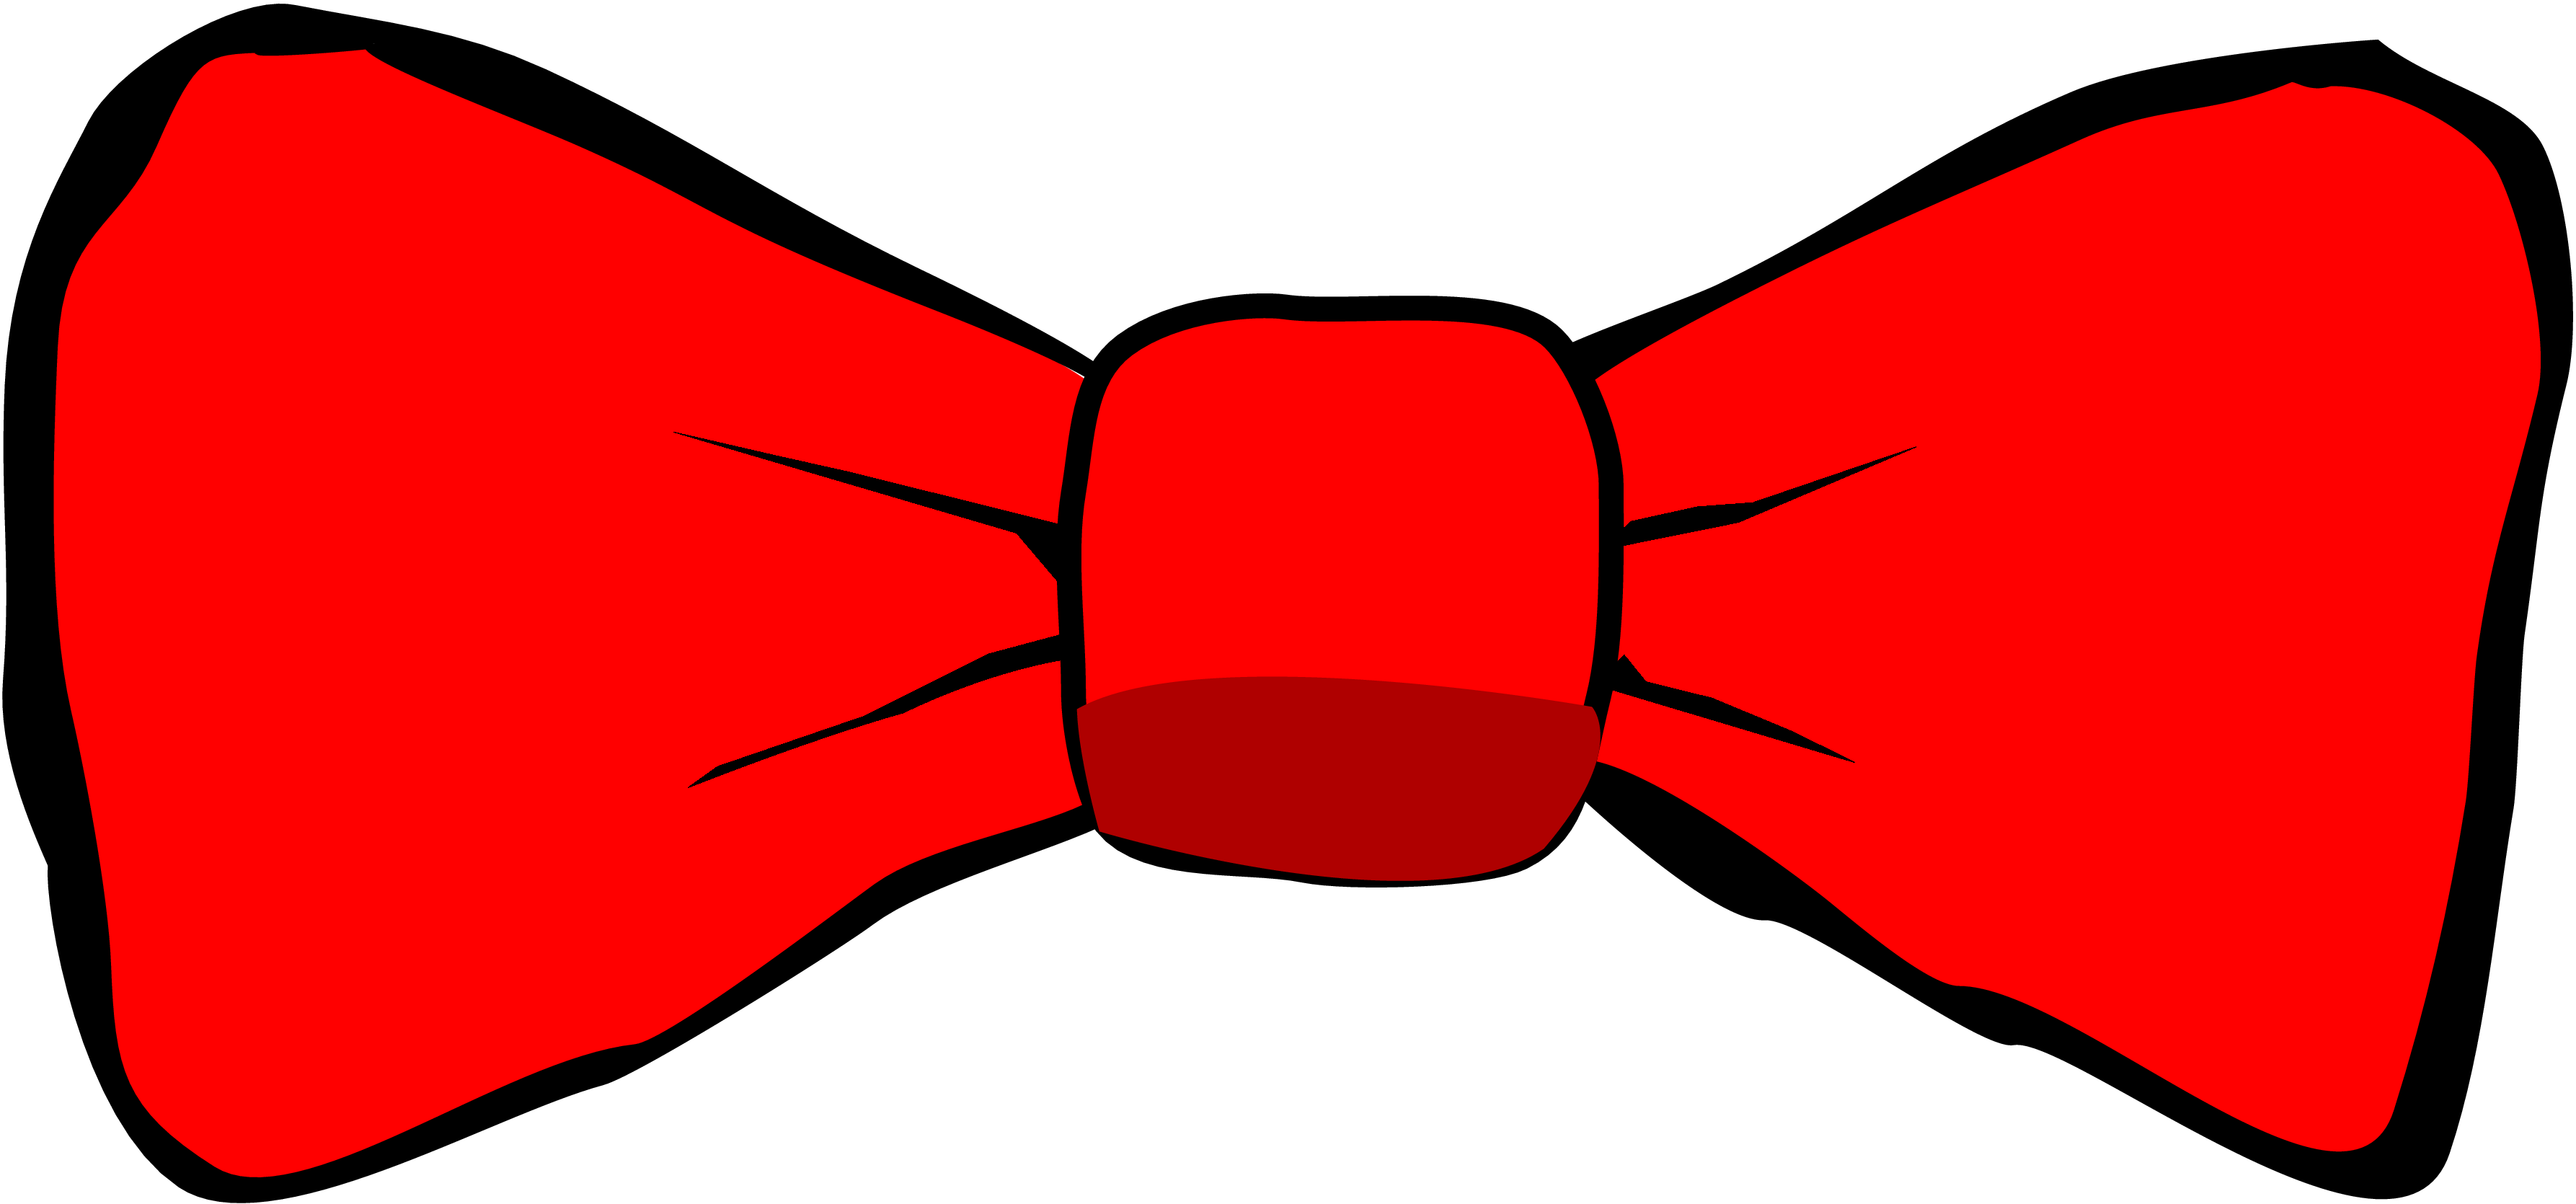 Tie clipart bow tie pattern Animated com Photos hulza Page